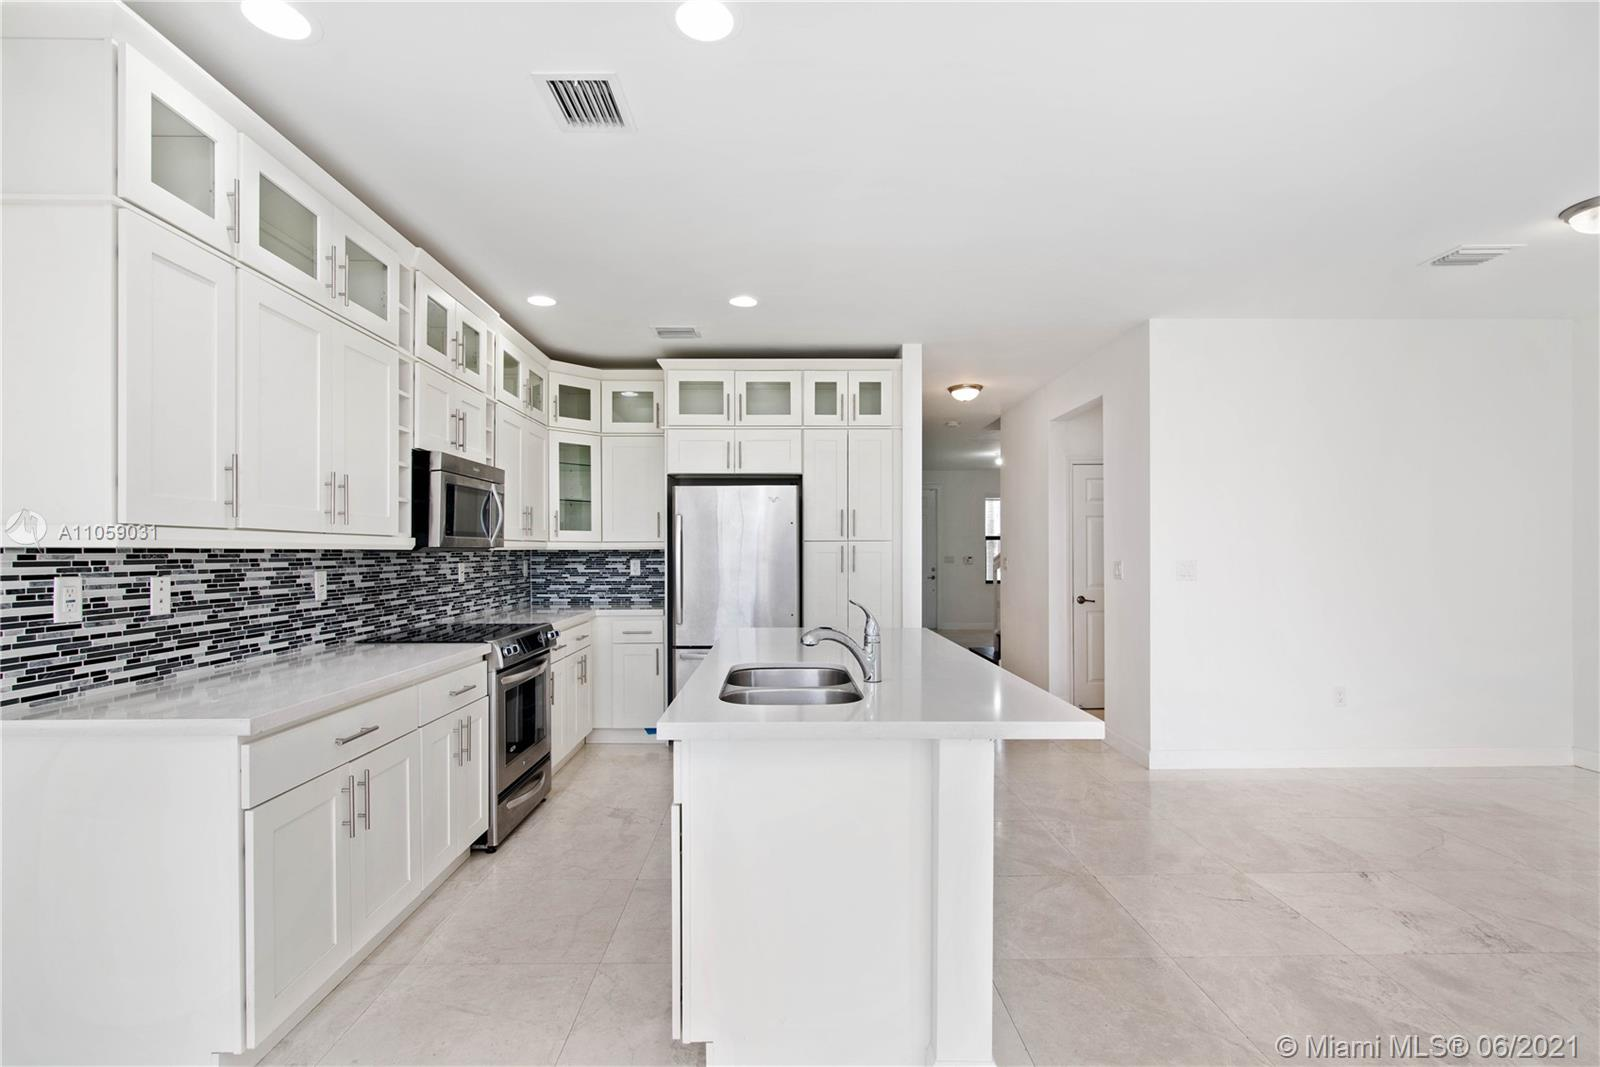 Doral Cay #10460 - 10460 NW 61st St #10460, Doral, FL 33178